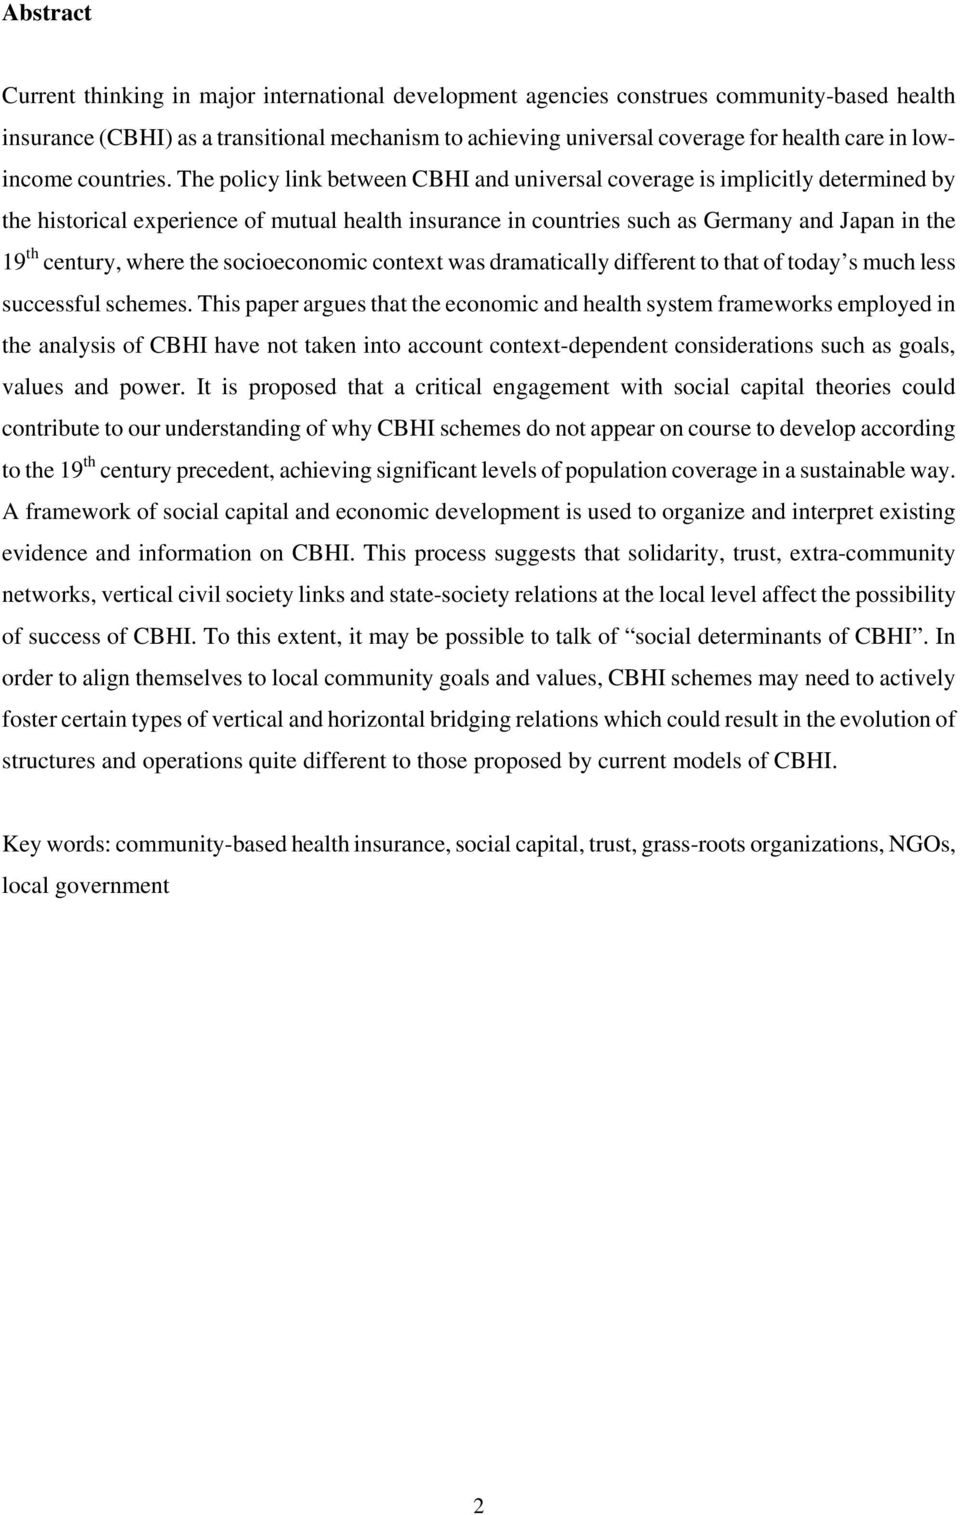 The policy link between CBHI and universal coverage is implicitly determined by the historical experience of mutual health insurance in countries such as Germany and Japan in the 19 th century, where